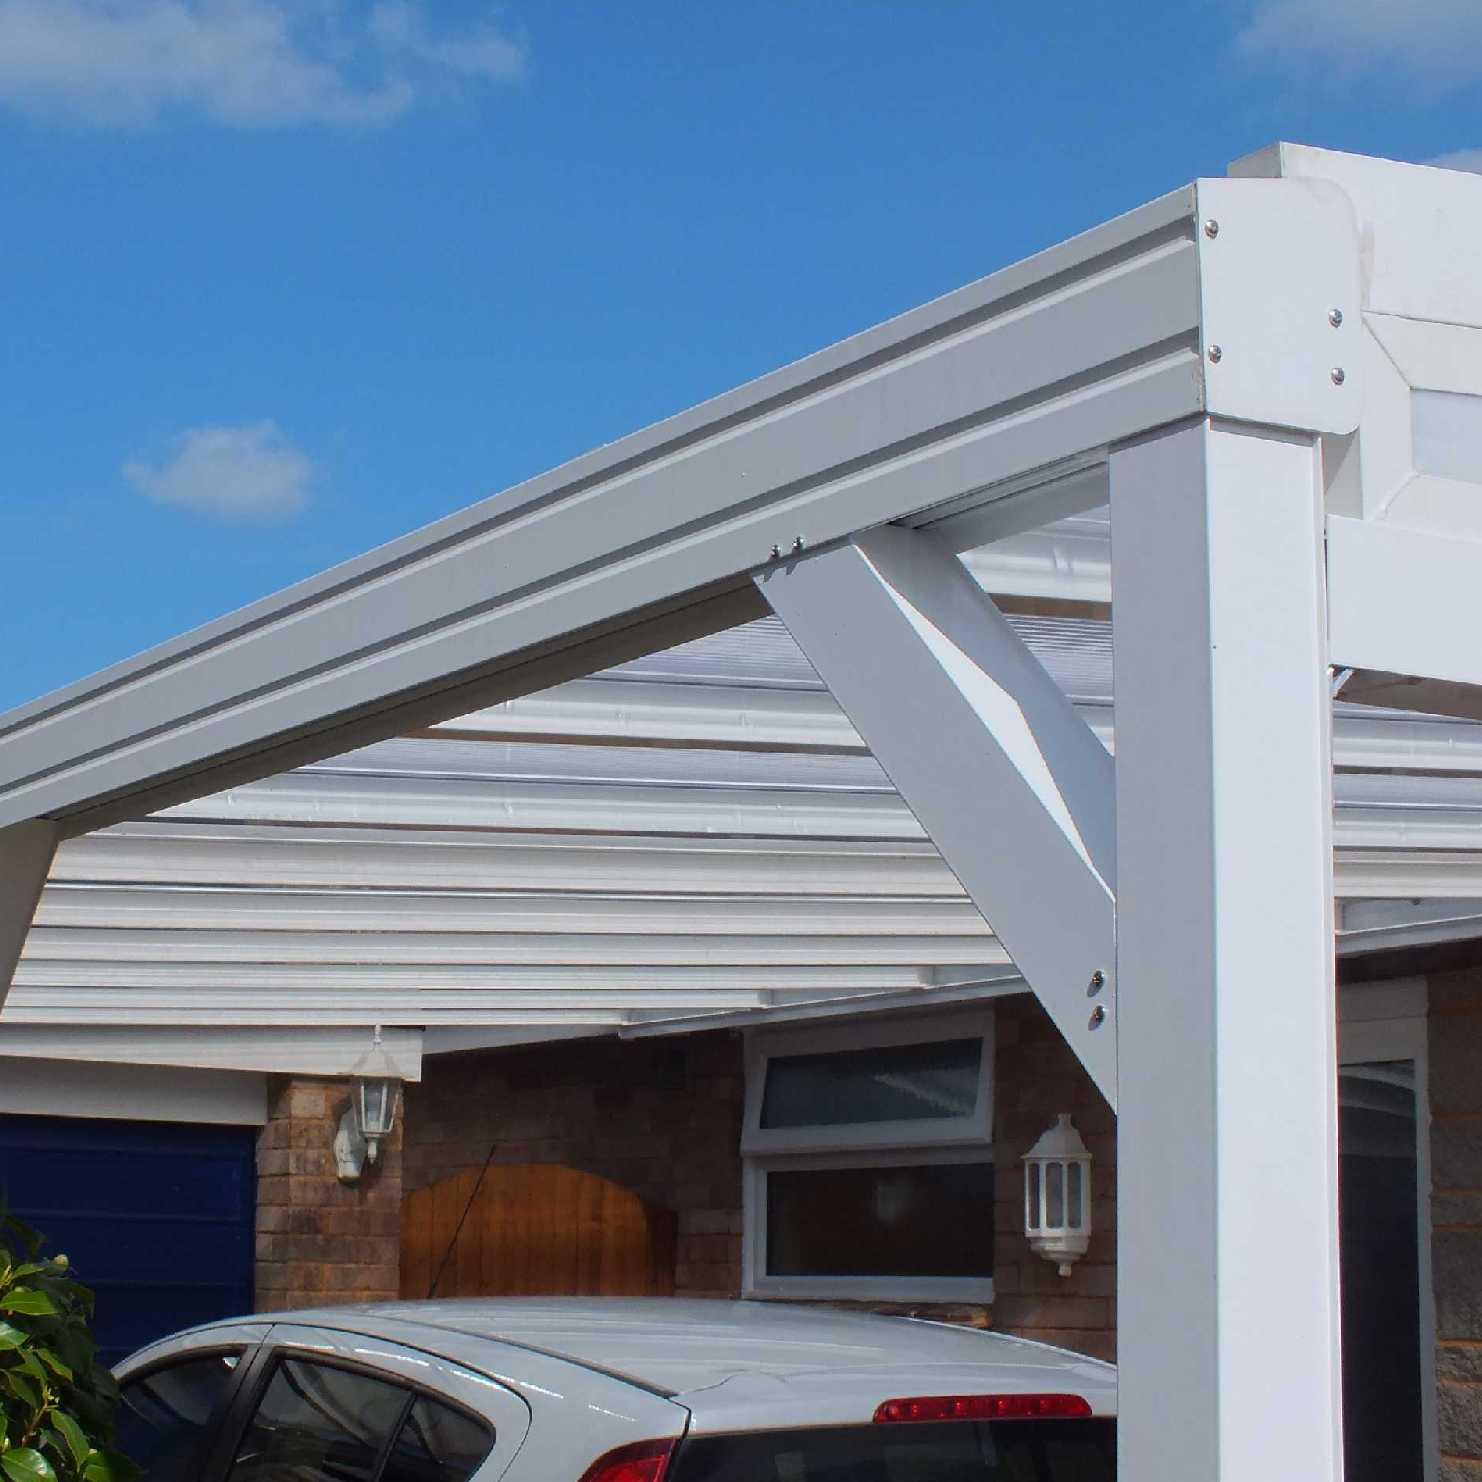 Buy Omega Smart White Lean-To Canopy with 16mm Polycarbonate Glazing - 4.9m (W) x 3.5m (P), (3) Supporting Posts online today